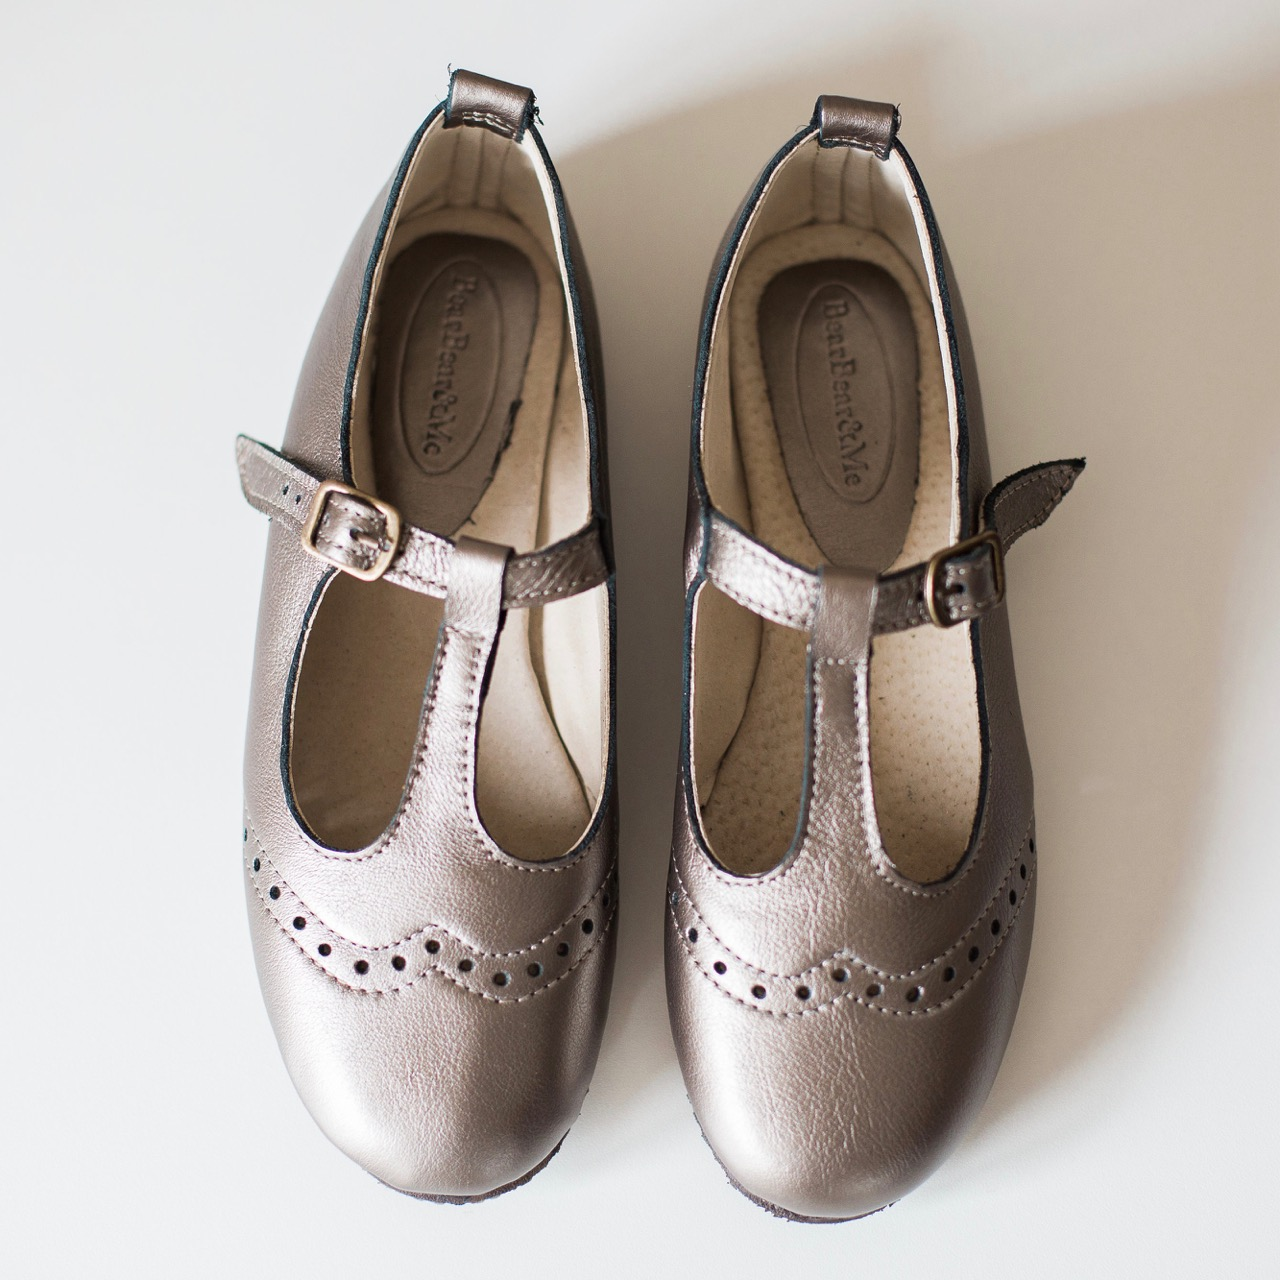 Ladies Pewter Mary Janes with broguing - LMJ3